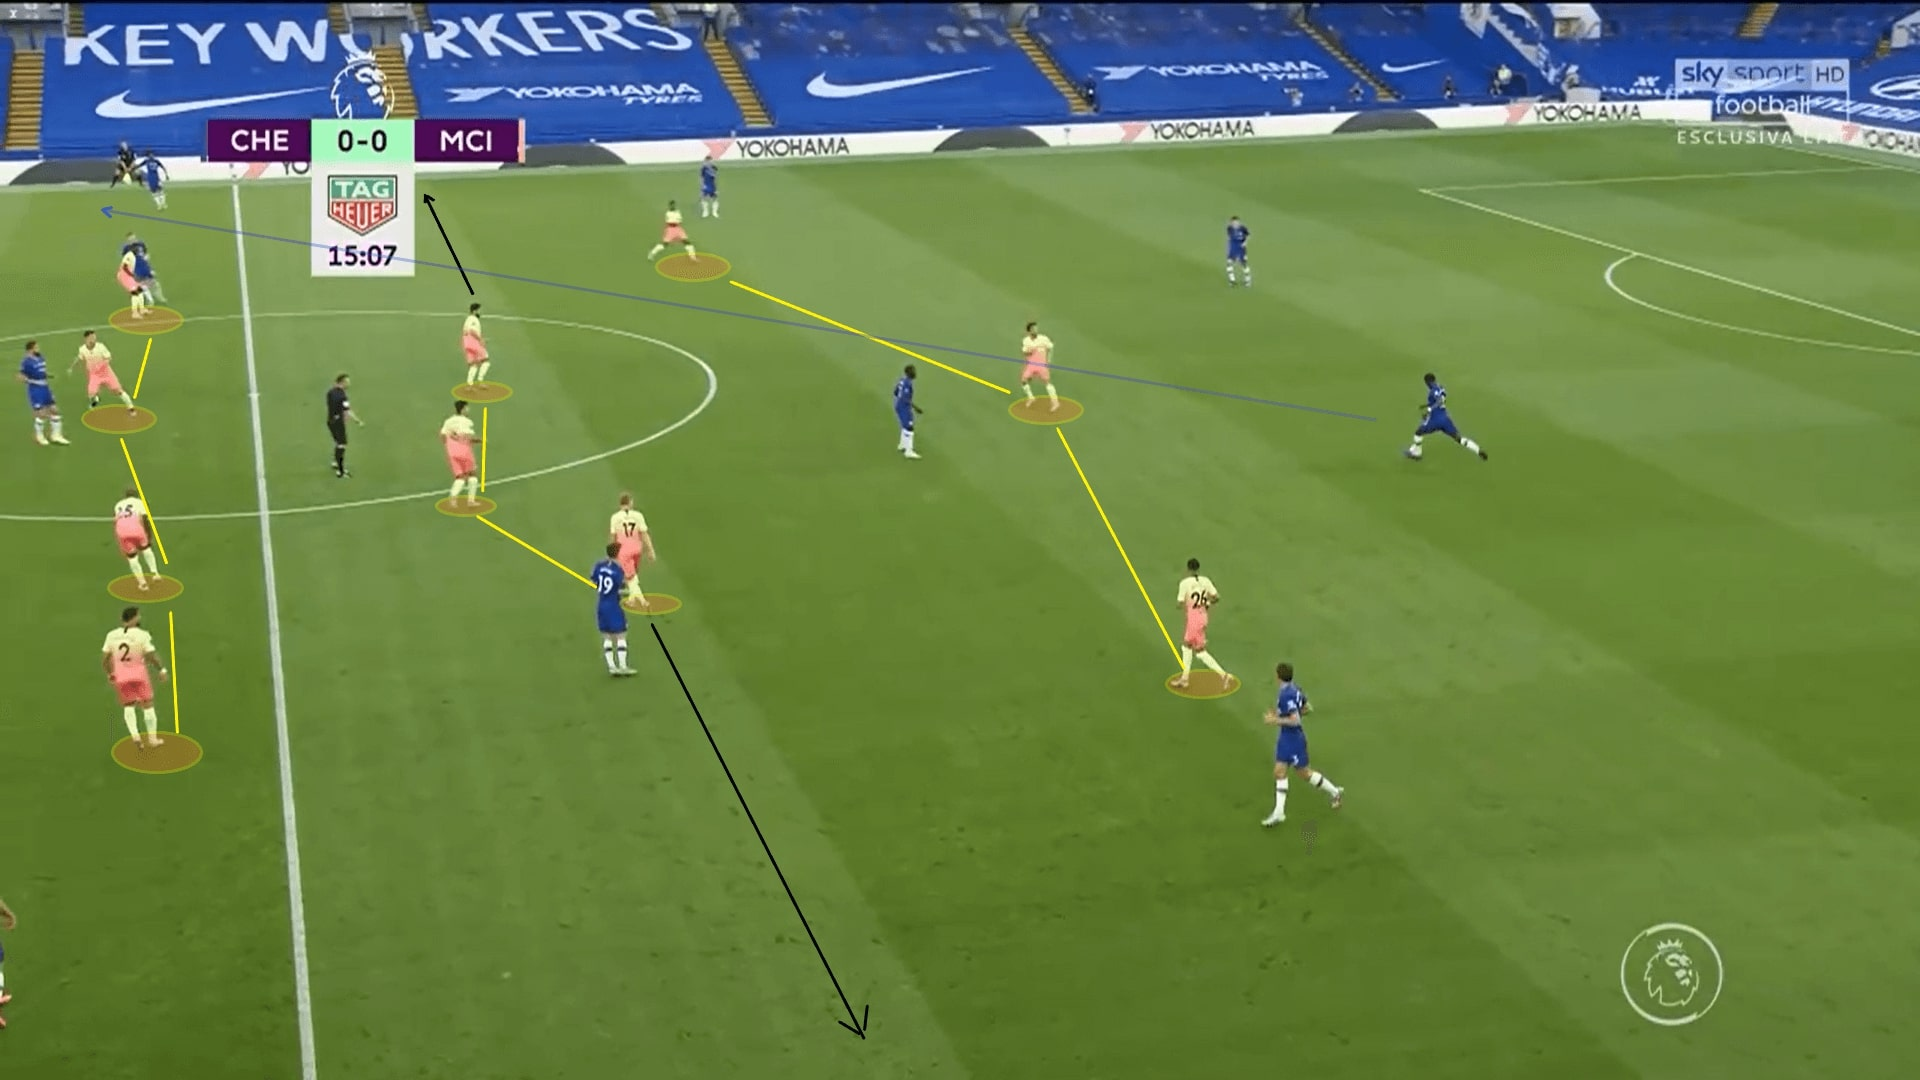 Premier League 2019/20: Chelsea vs Manchester City - tactical analysis tactics